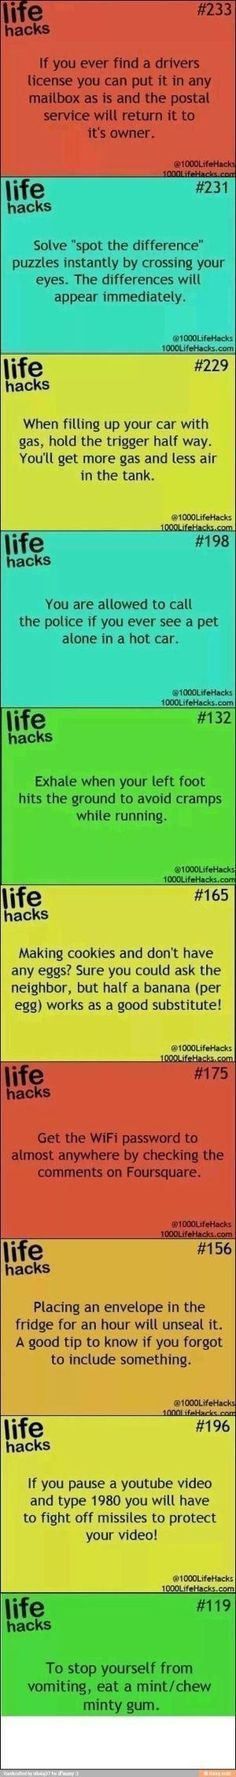 #Life_Hacks For more great pins go to @KaseyBelleFox